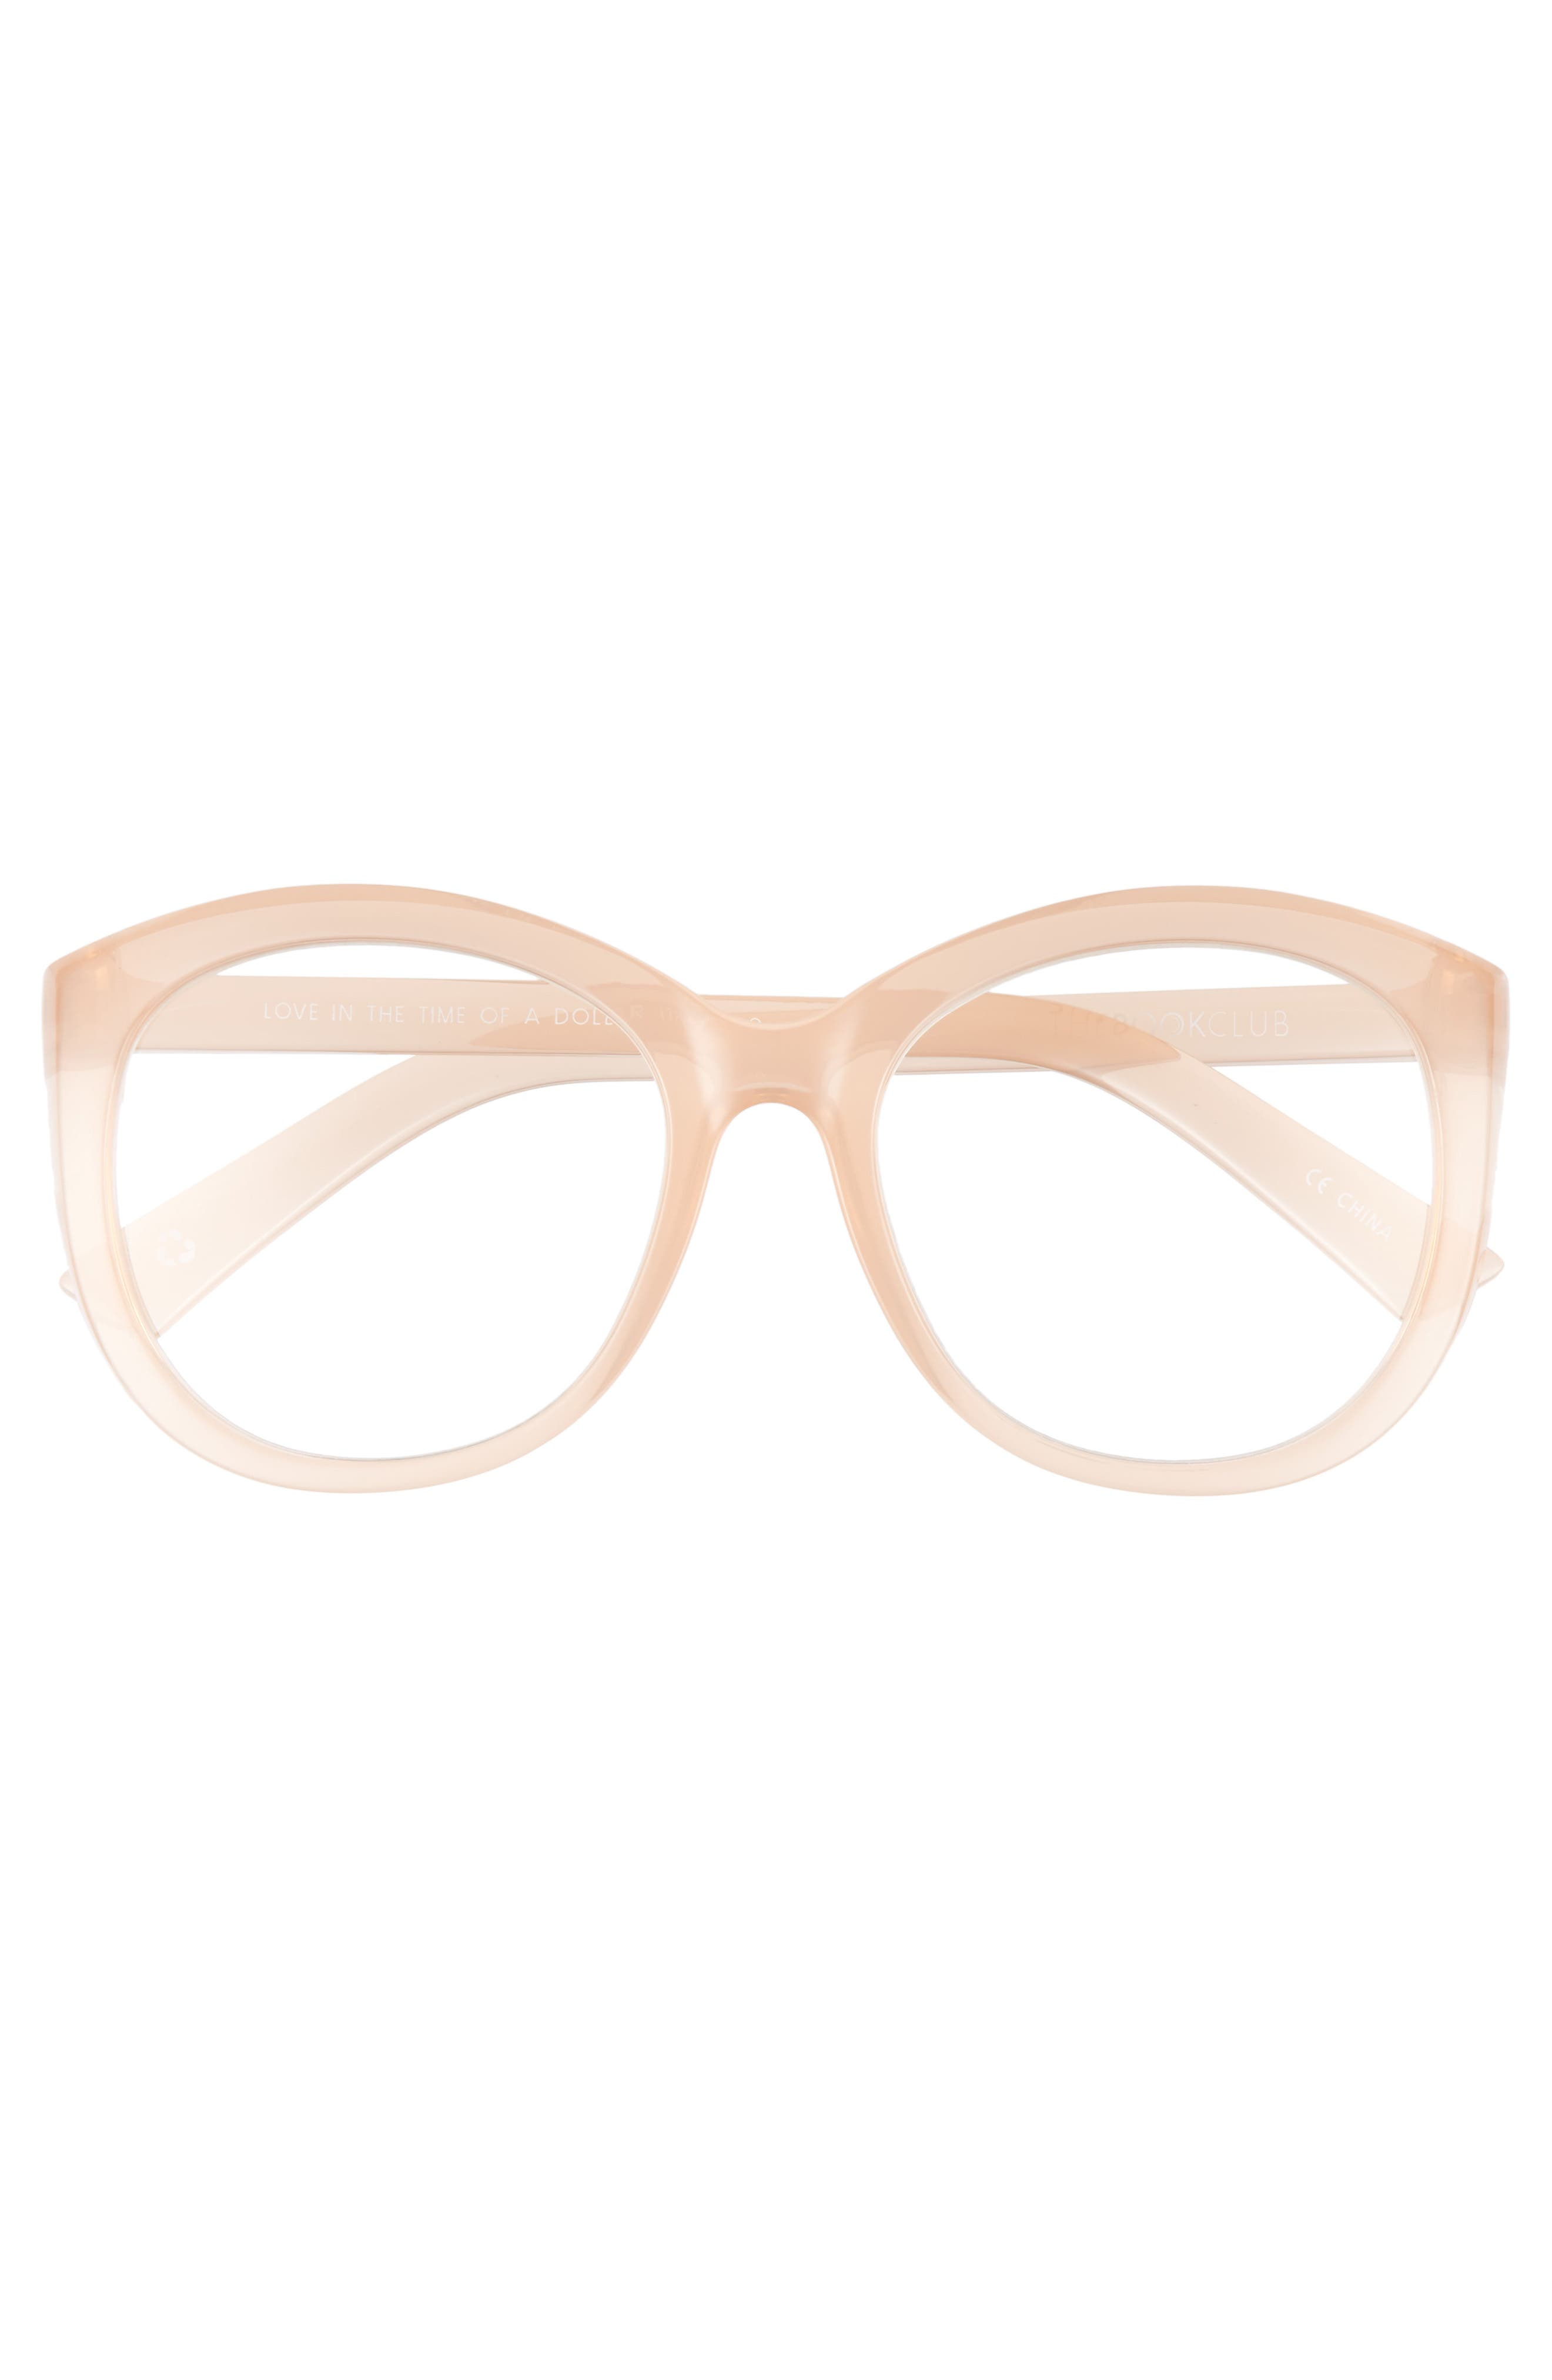 Love In The Time Of A Dollar 55mm Reading Glasses,                             Alternate thumbnail 3, color,                             Tea Rose